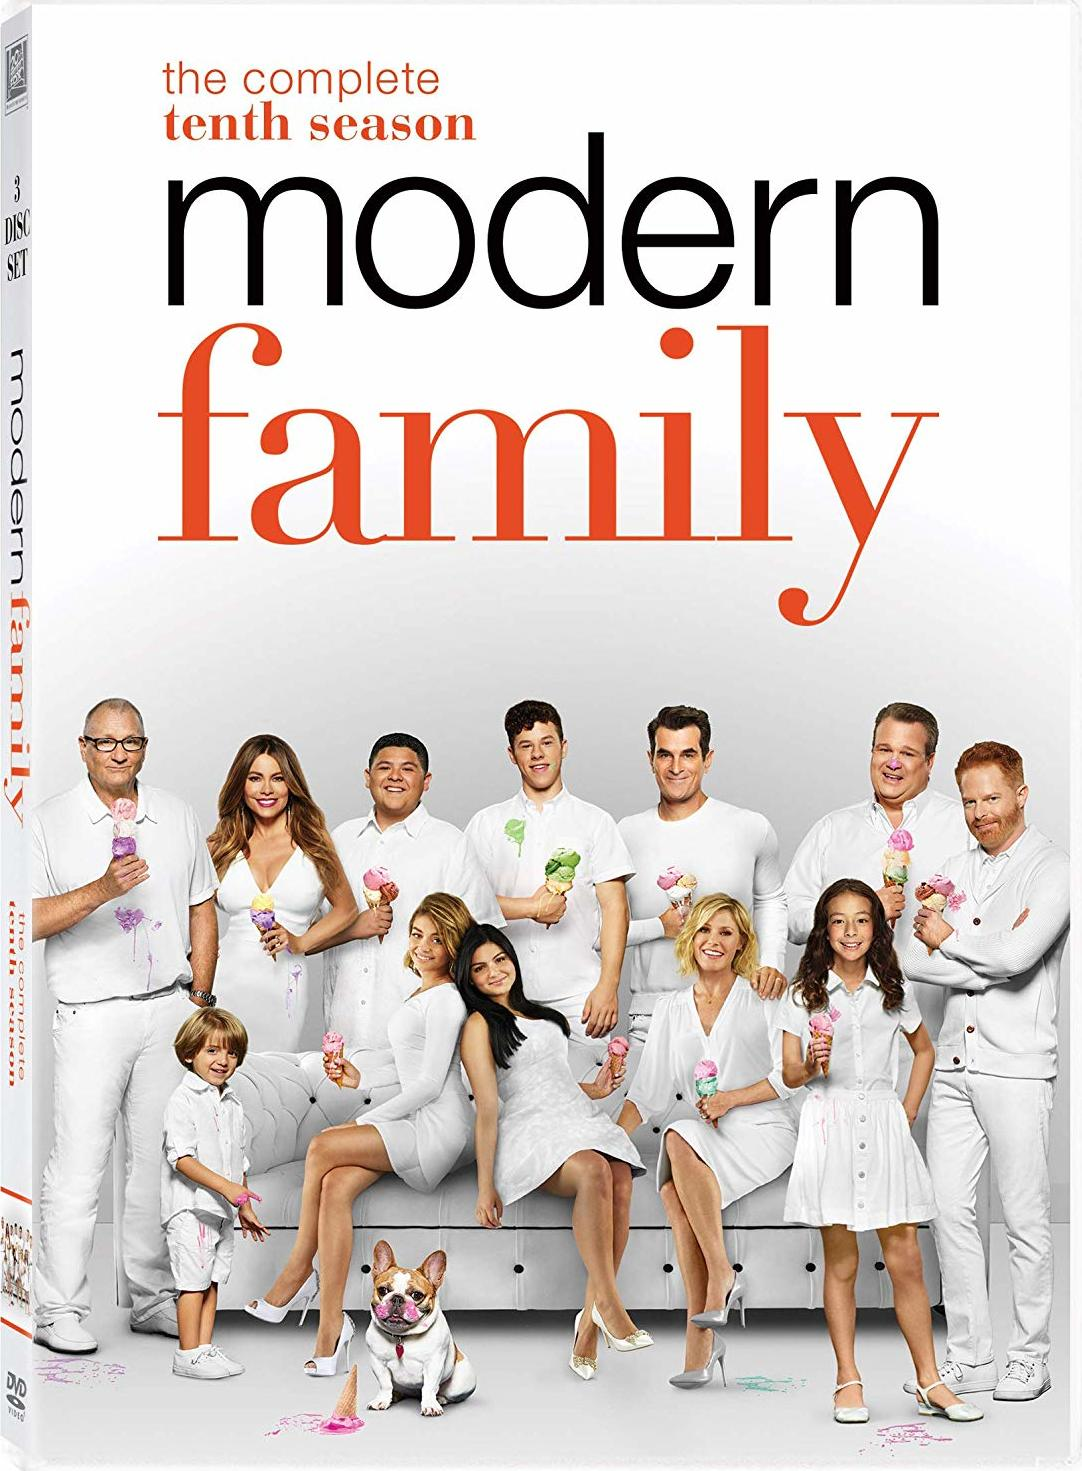 Modern Family: The Complete Tenth Season DVD